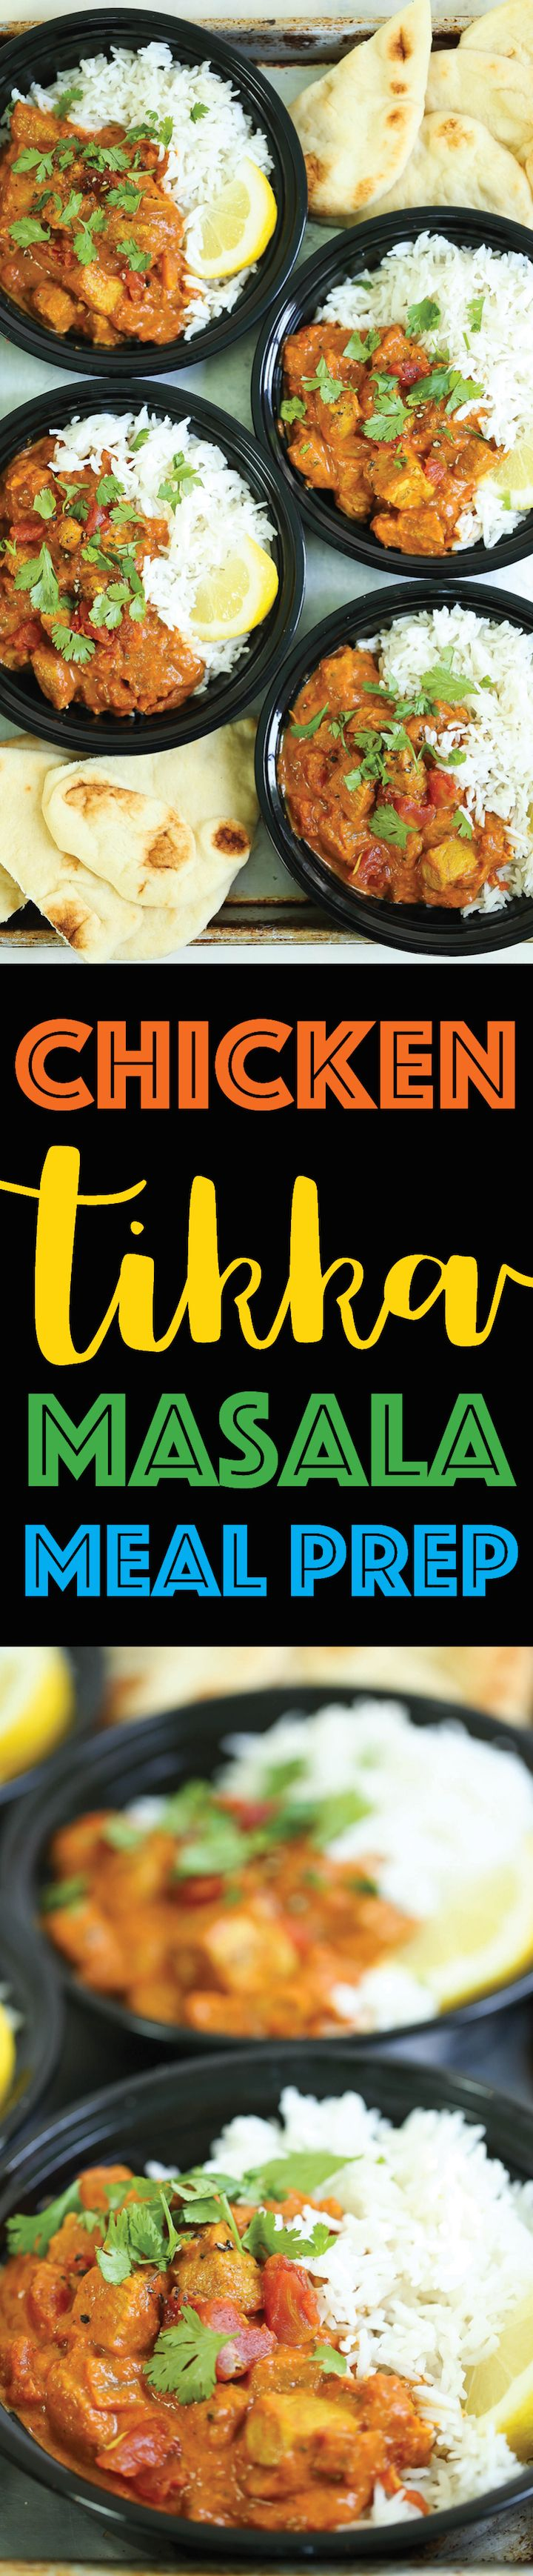 Chicken Tikka Masala Meal Prep - Everyone's FAVORITE chicken tikka masala bowls made from scratch in just 30 min! And you can prep for the entire week!!!